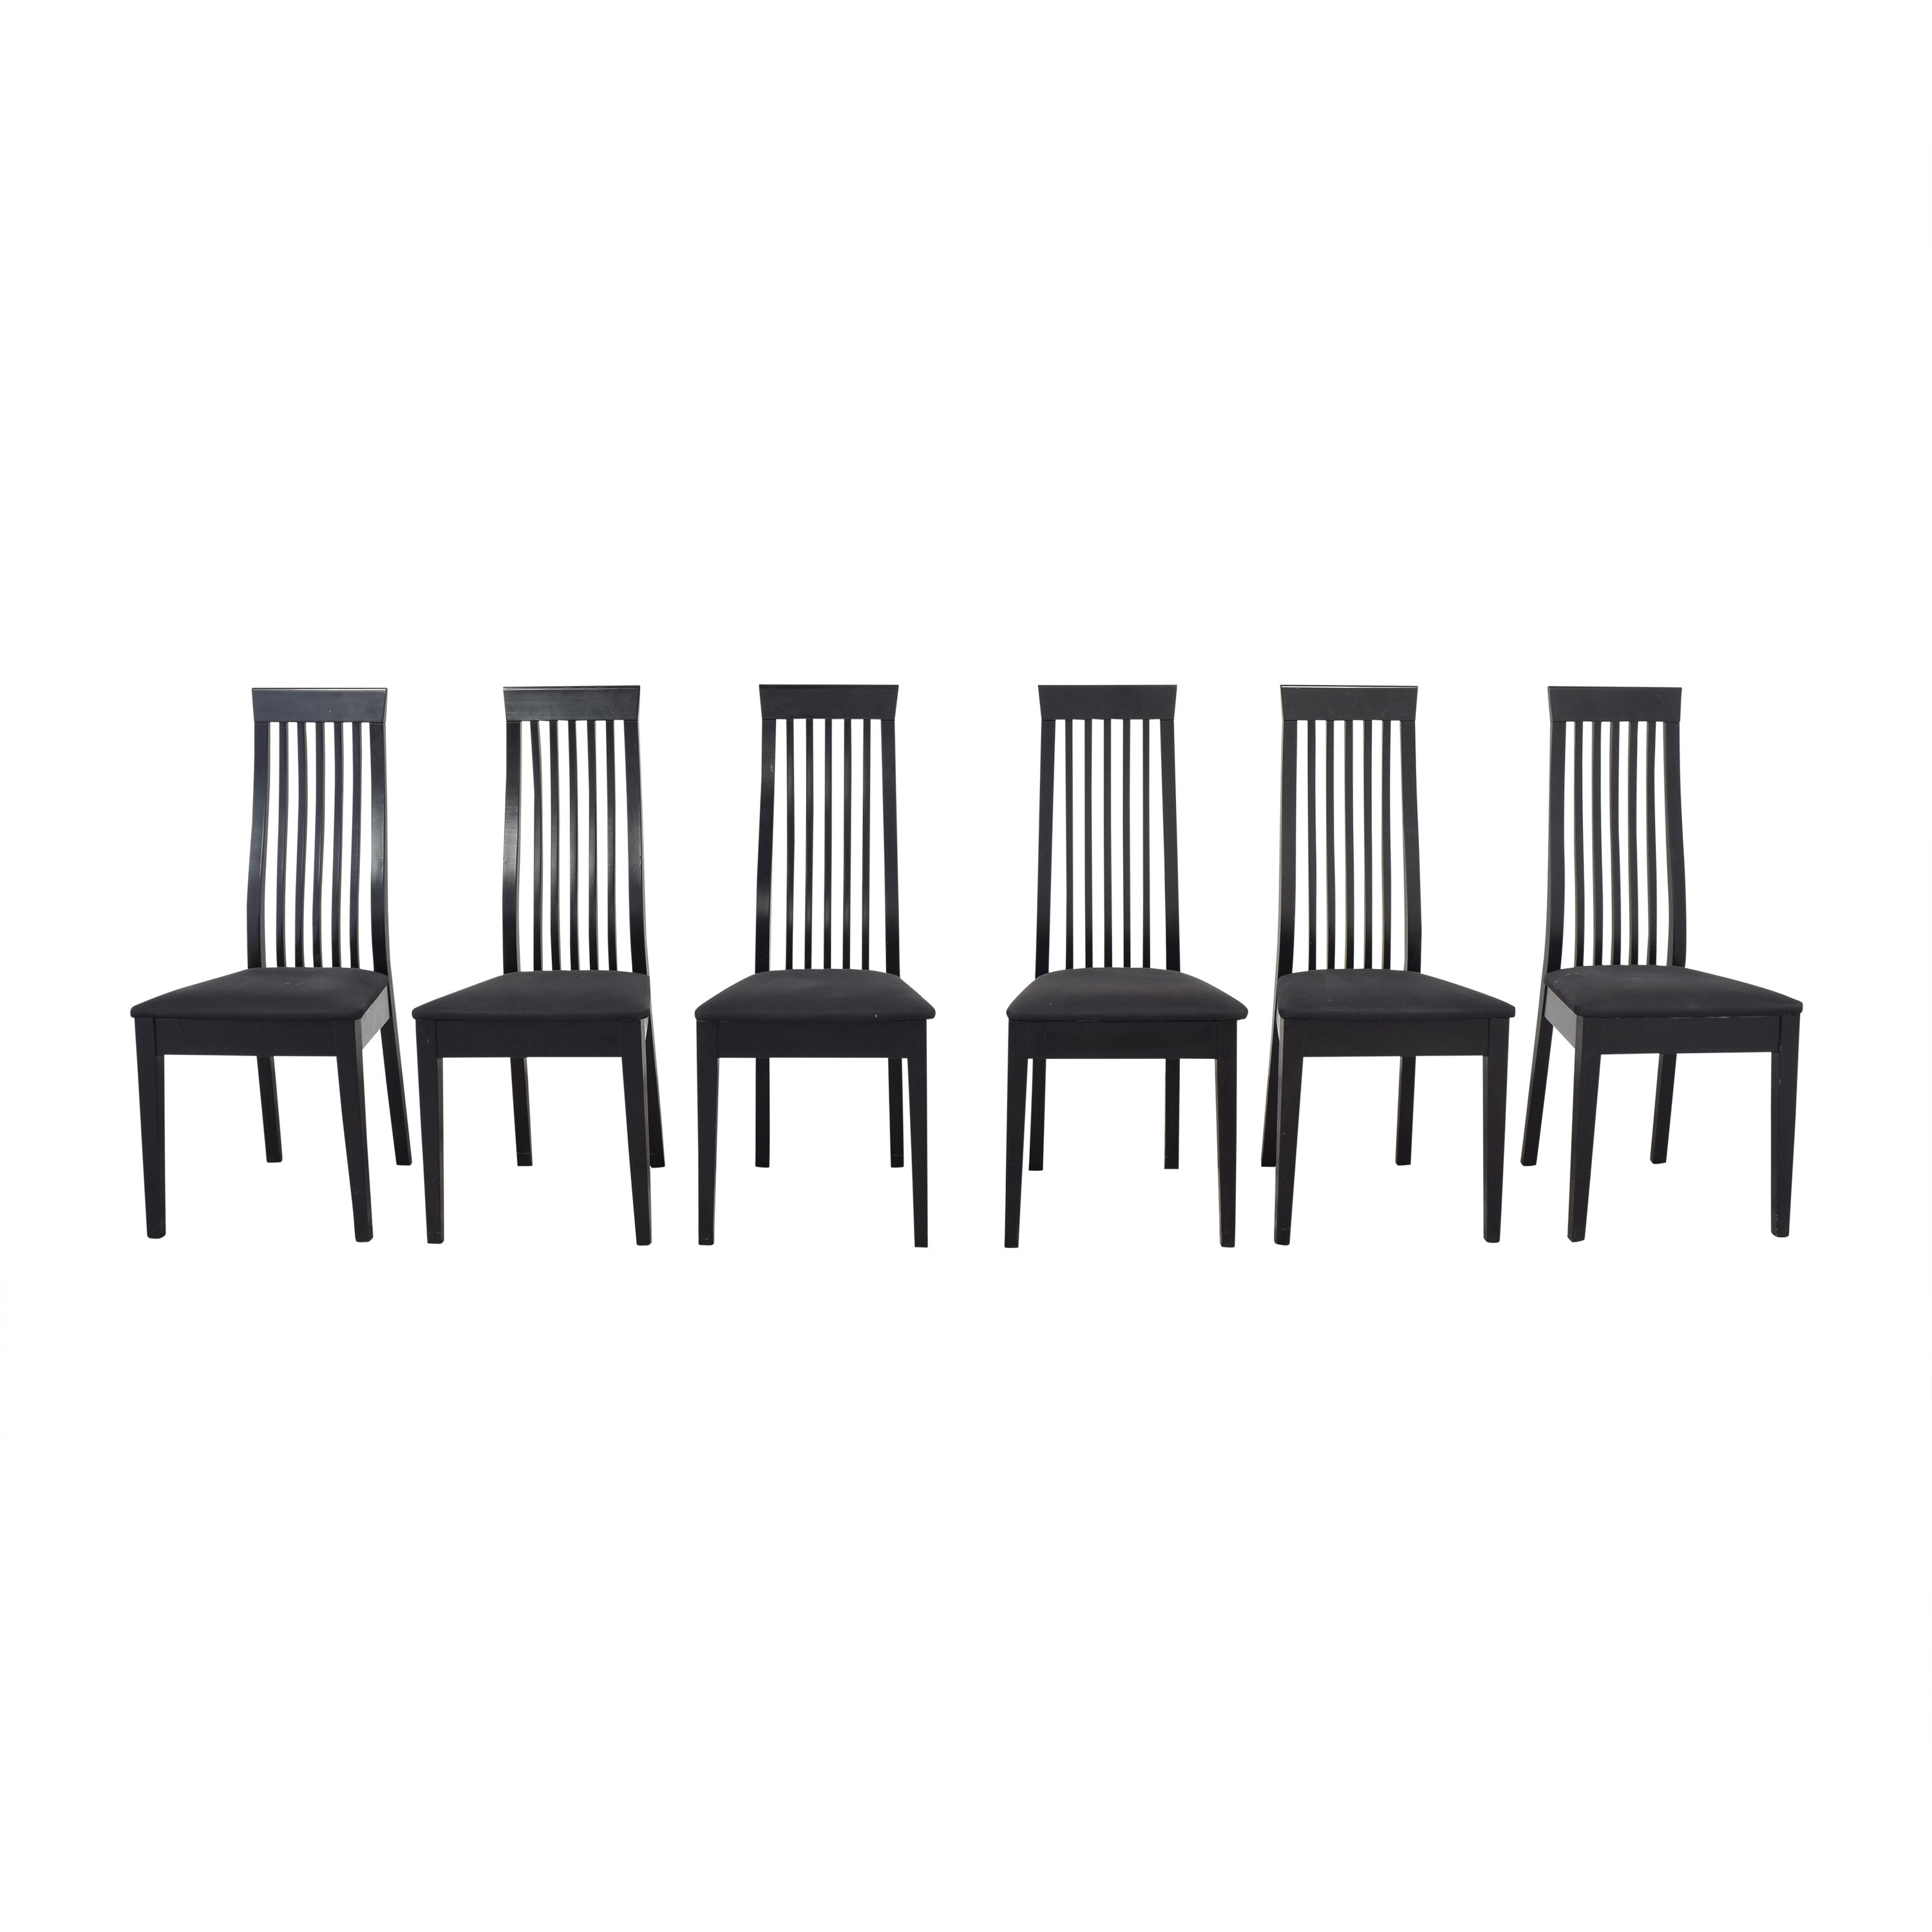 Calligaris Calligaris Connubia Dining Chairs on sale